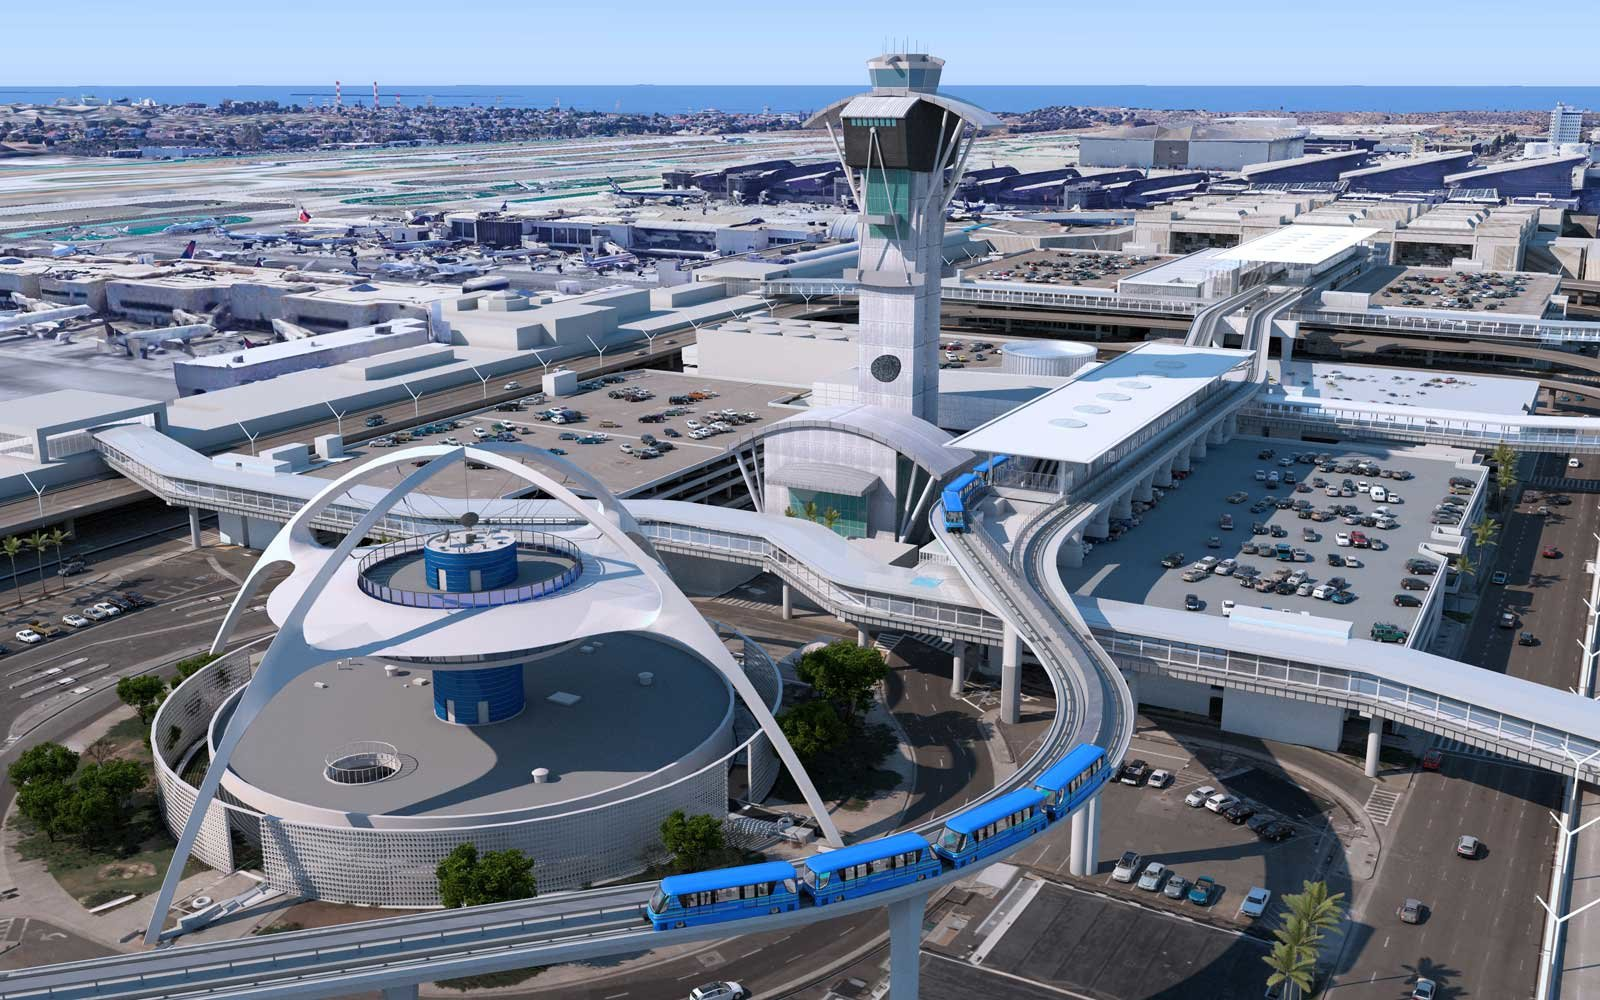 Los Angeles International Airport people mover tram rail system